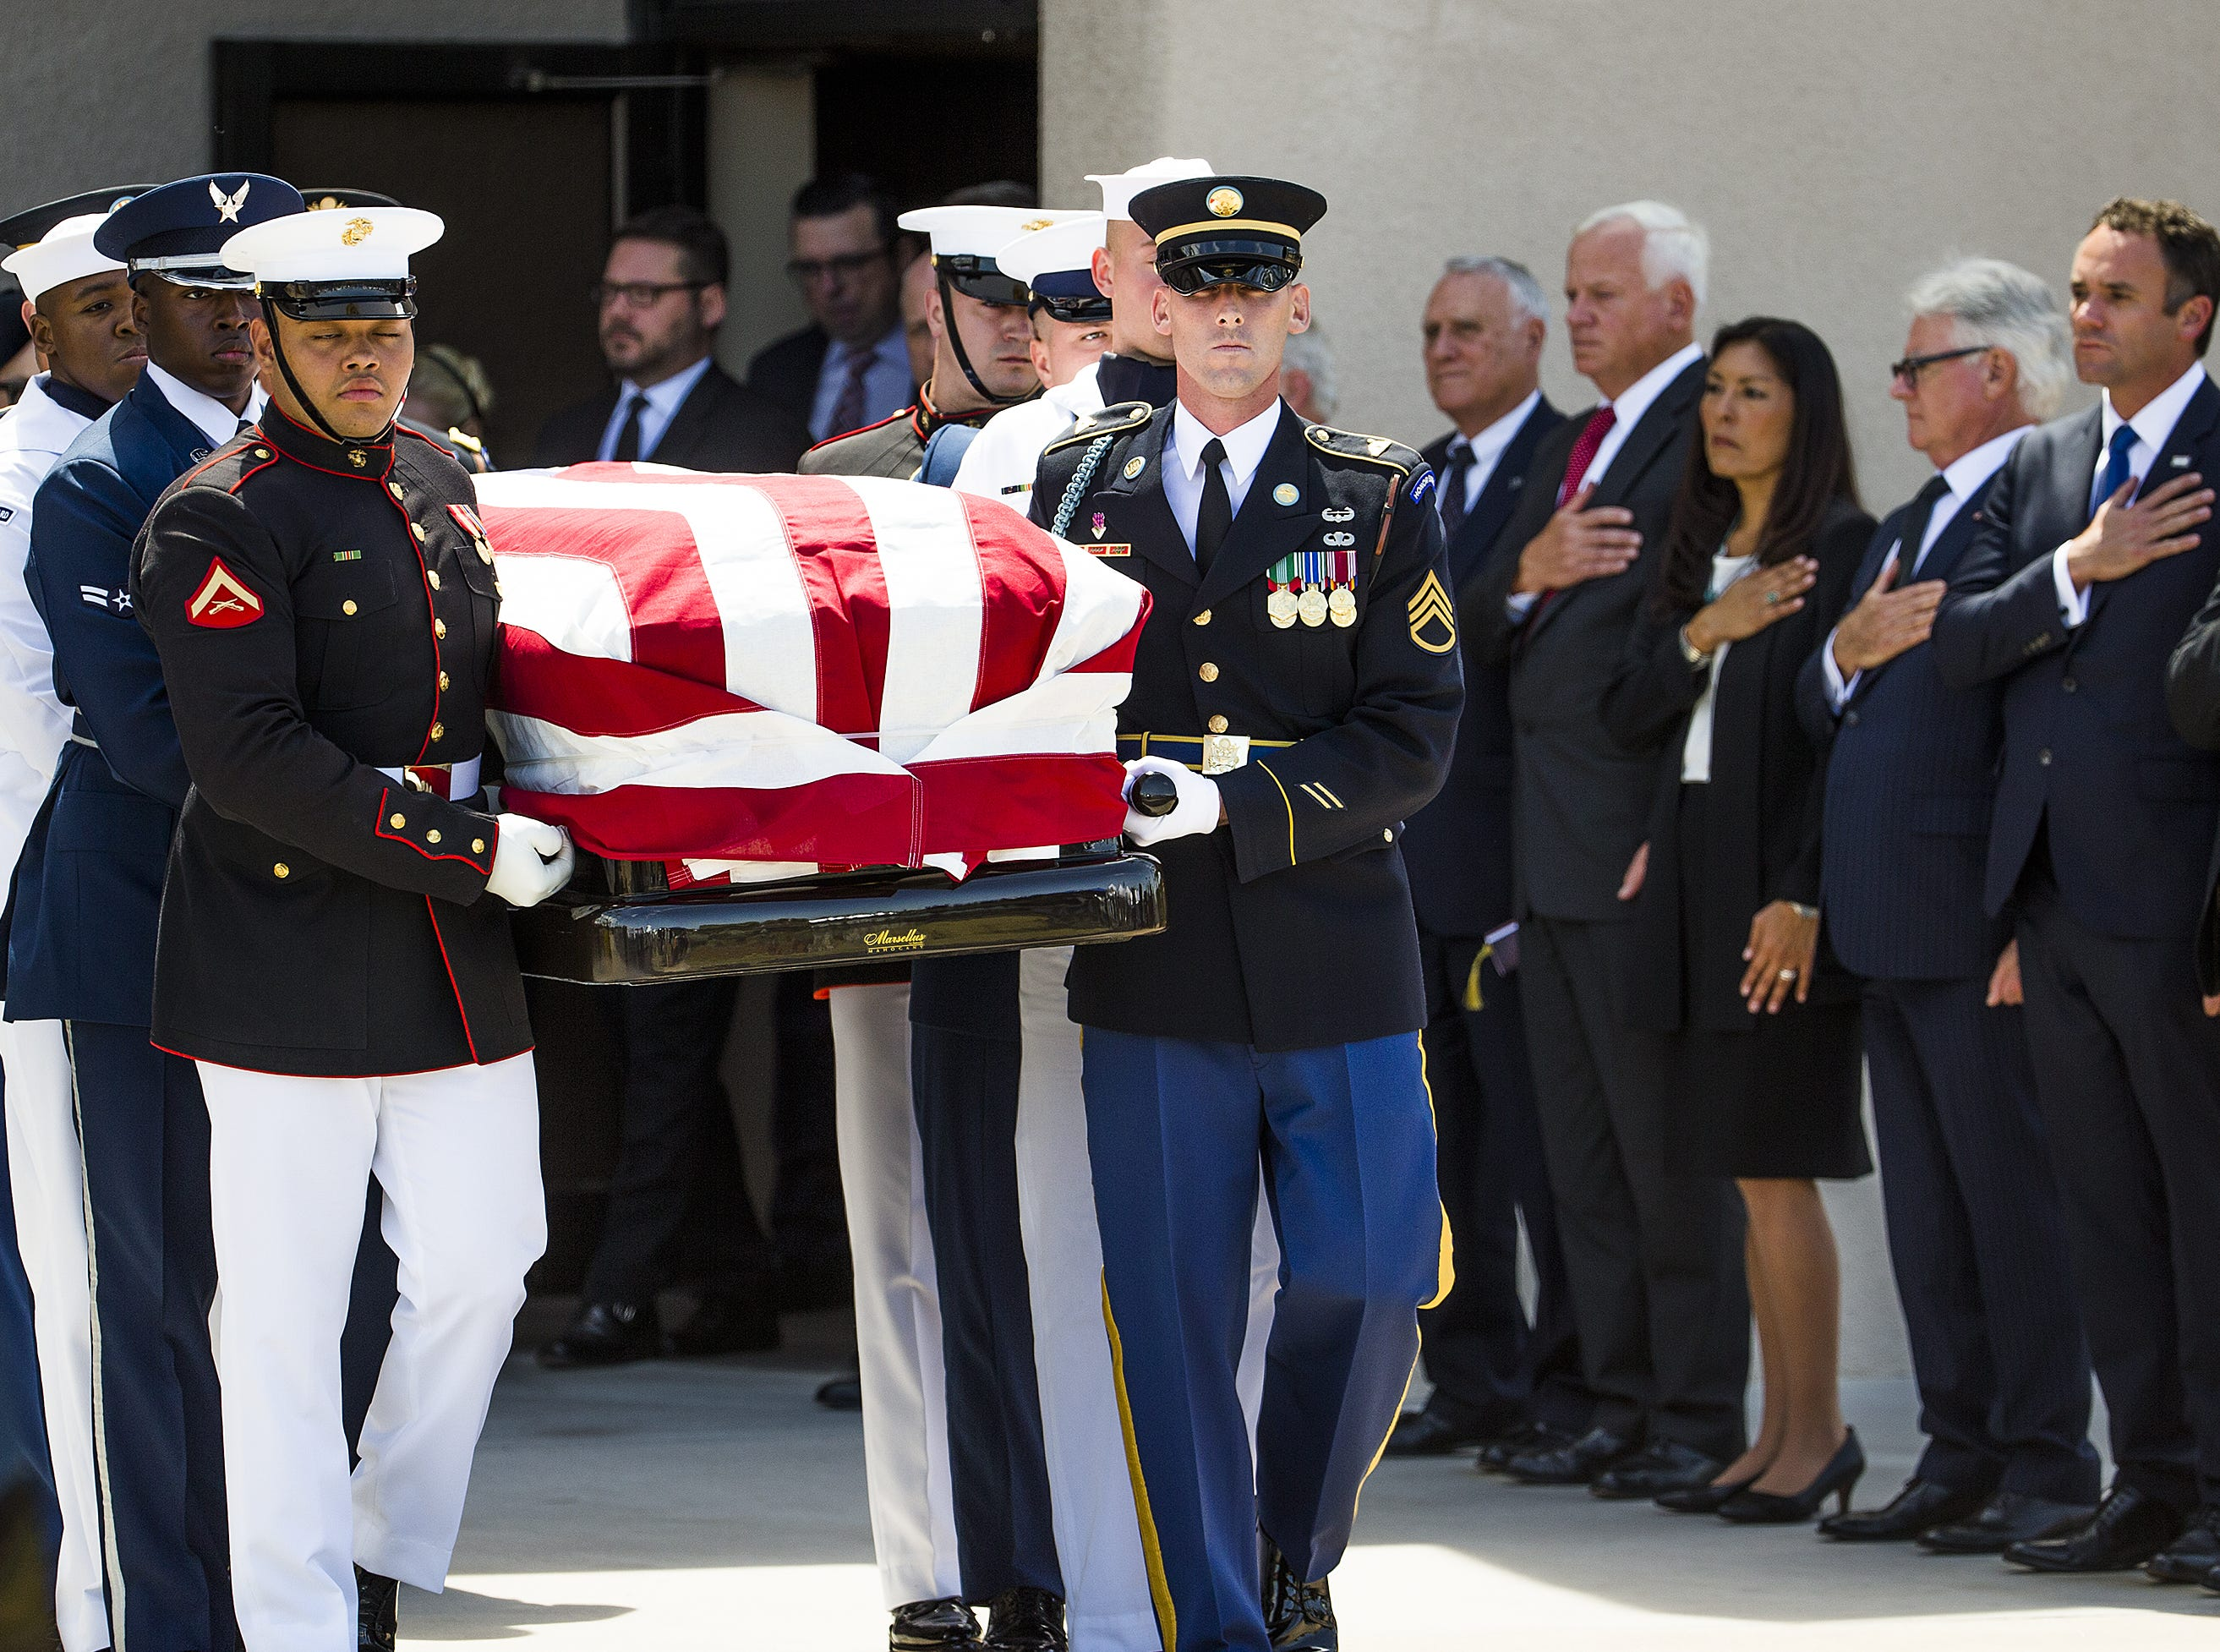 A military honor guard carries the casket of Sen. John McCain from  North Phoenix Baptist Church in Phoenix, Aug. 30, 2018. A memorial service was held  and now McCain's body will be flown to Washington, D.C.